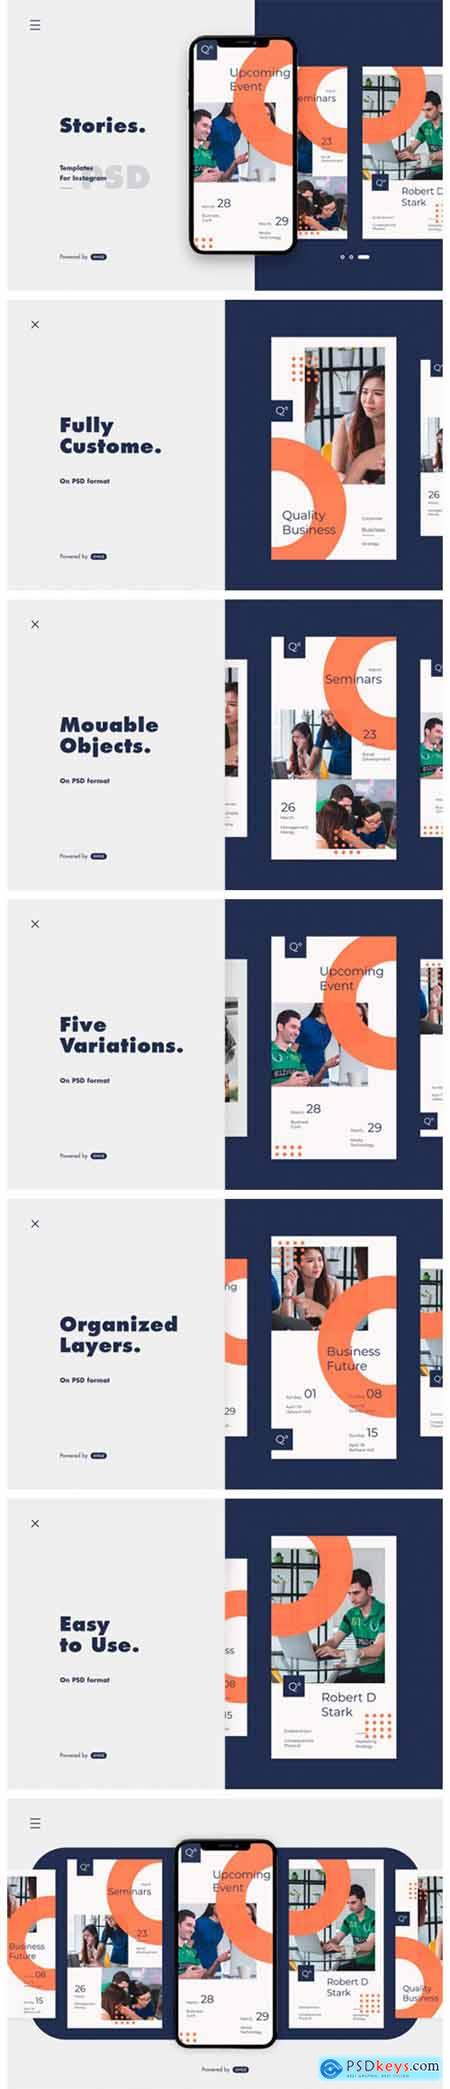 Instagram Story Template 1915883